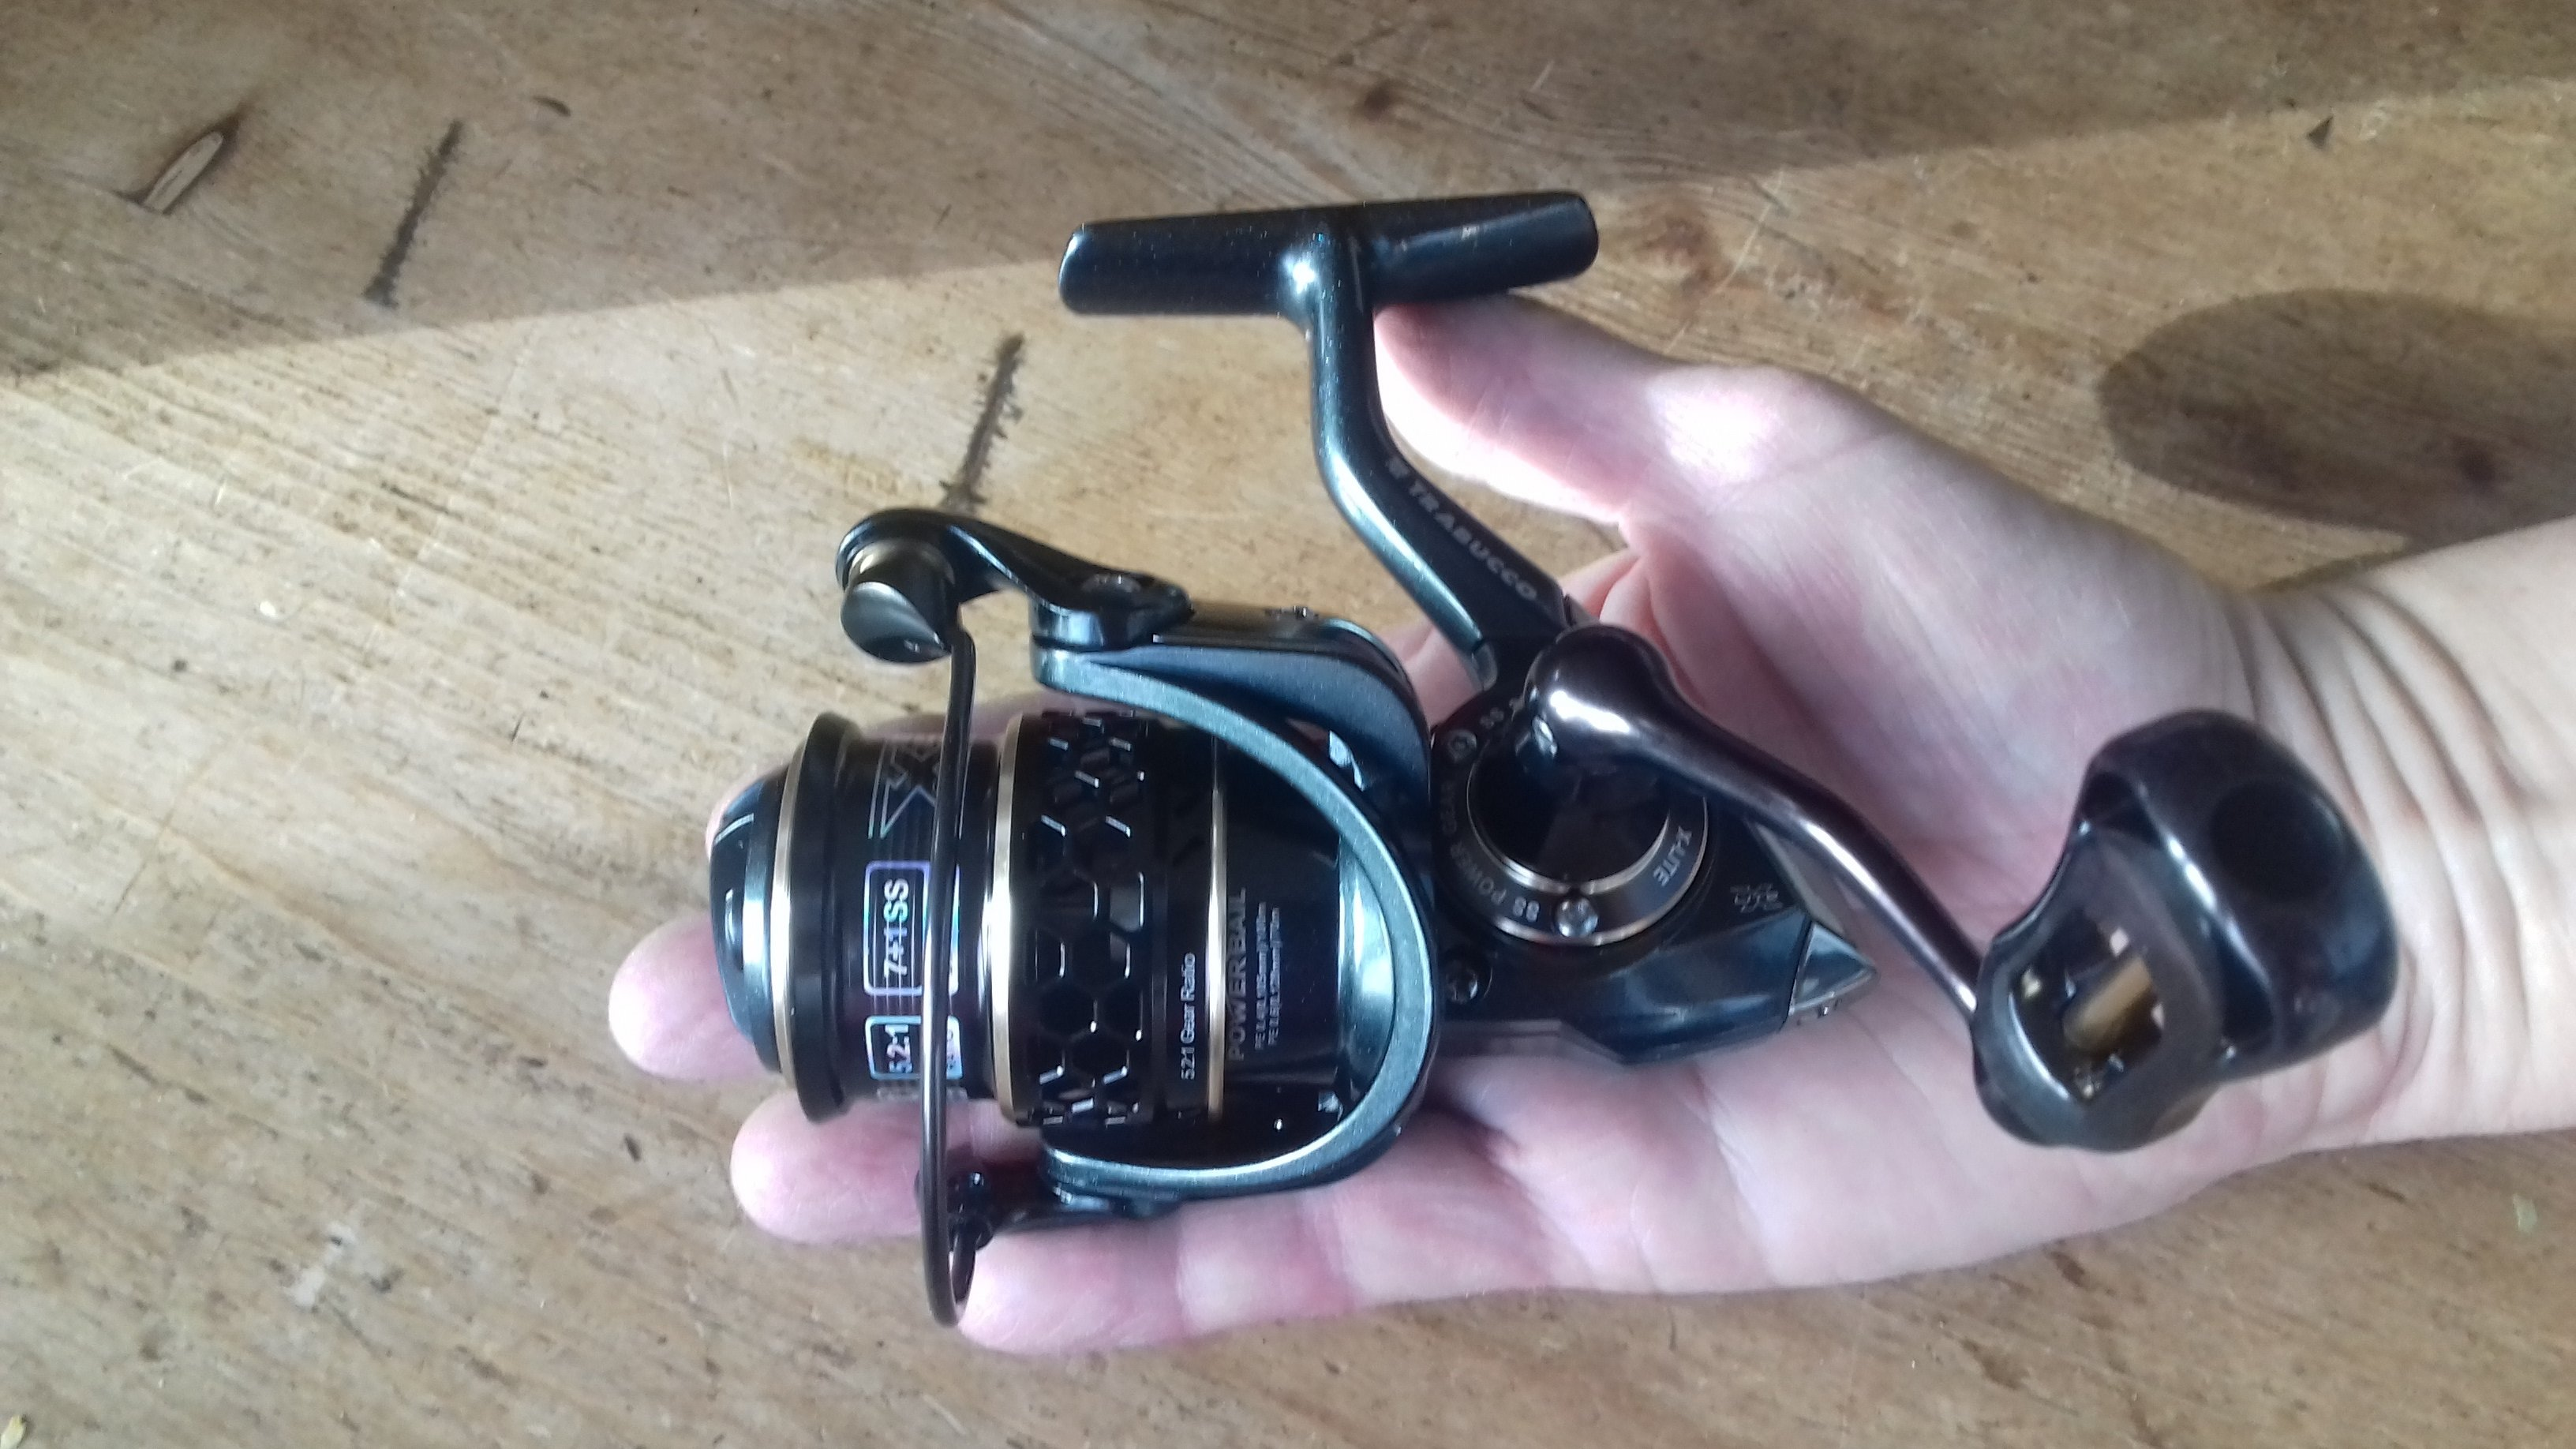 Xplore x light 1000 Ultralight lure fishing reel 7bb  7kg of drag 00467